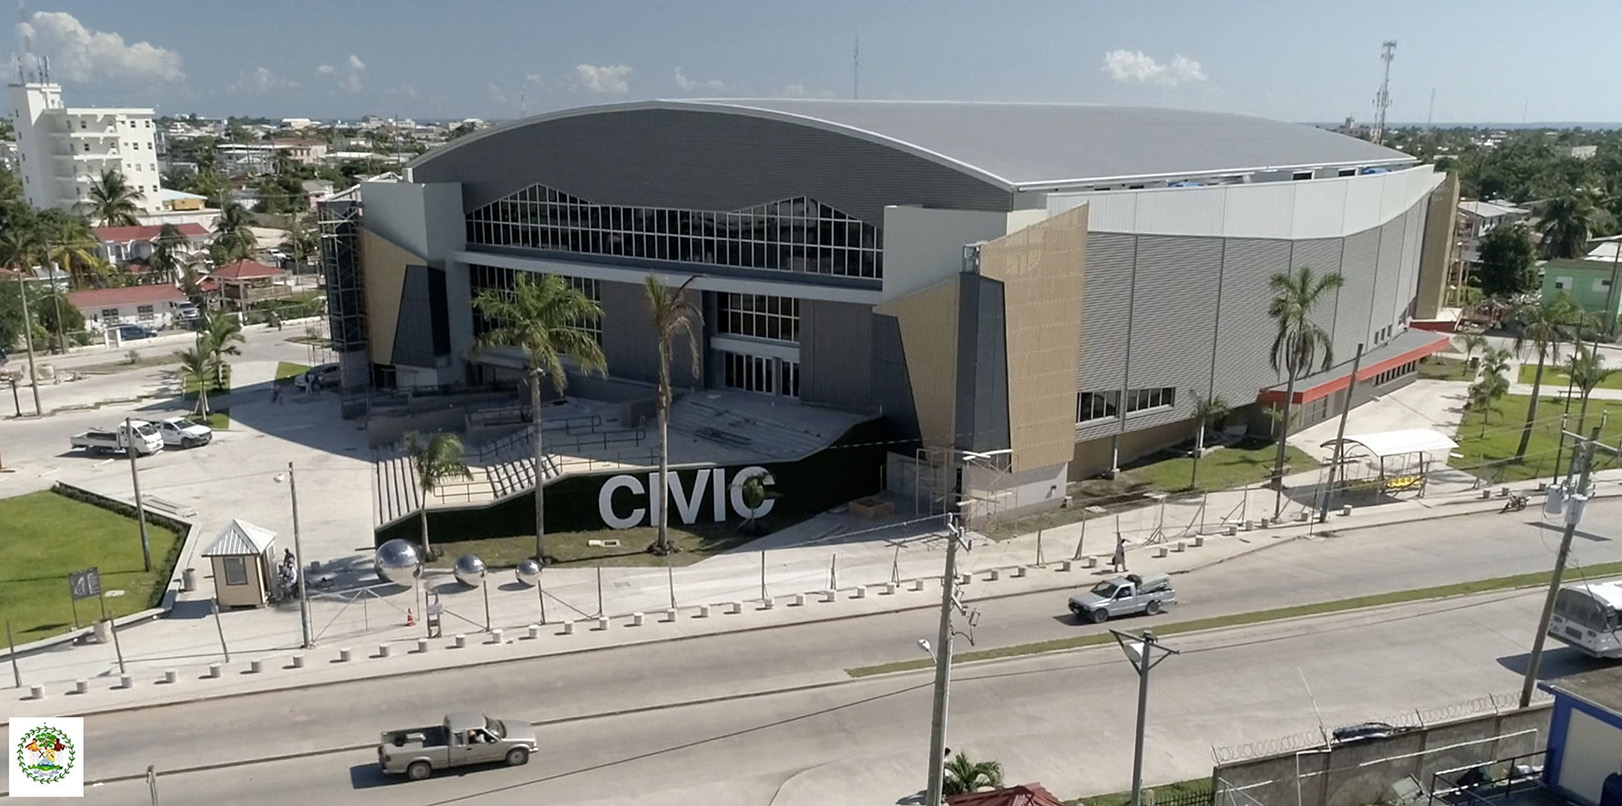 Aerial shot of new Belize Civic Centre. Dorset-based REIDsteel has been a key player in the construction of the complex in Belize City. (Picture from Government of Belize)